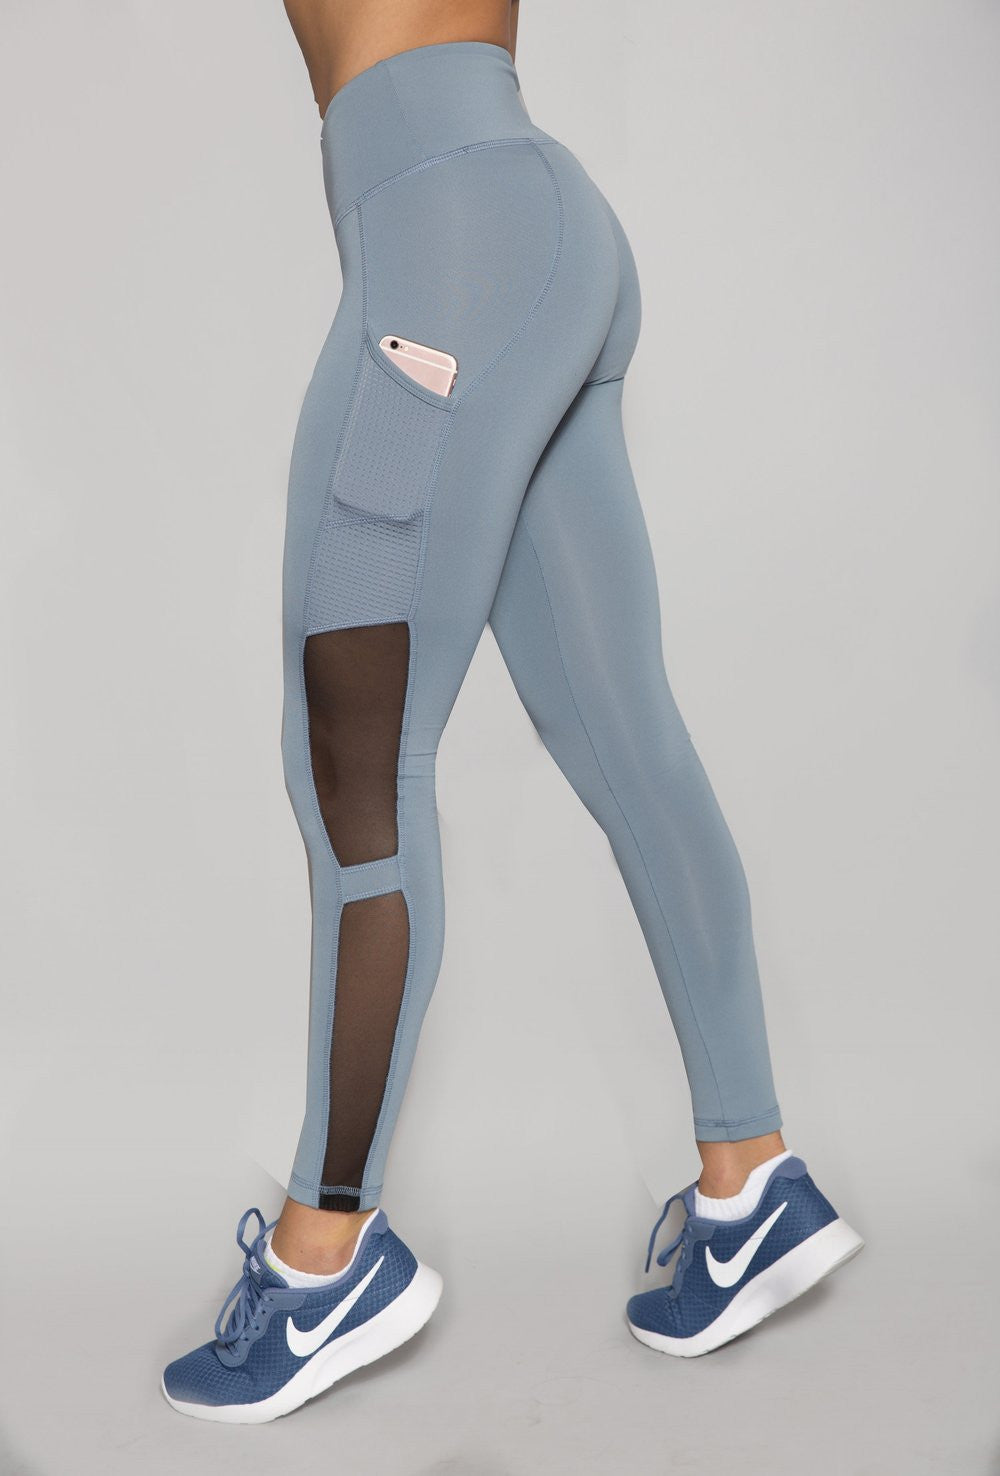 PLATINUM VORTEX SIDE POCKET LEGGINGS